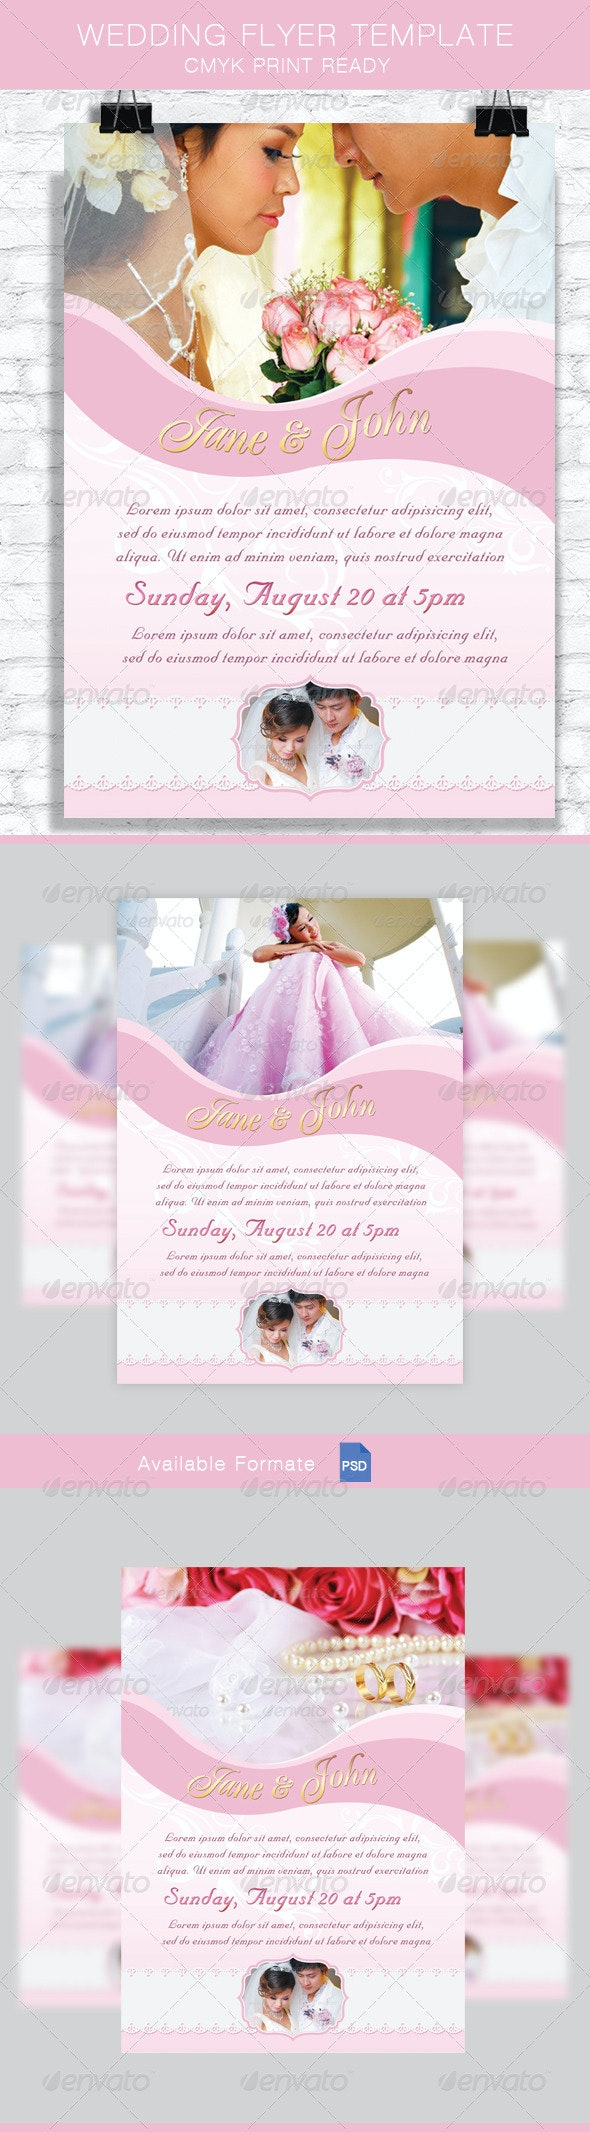 Wedding Flyer Template - Miscellaneous Events